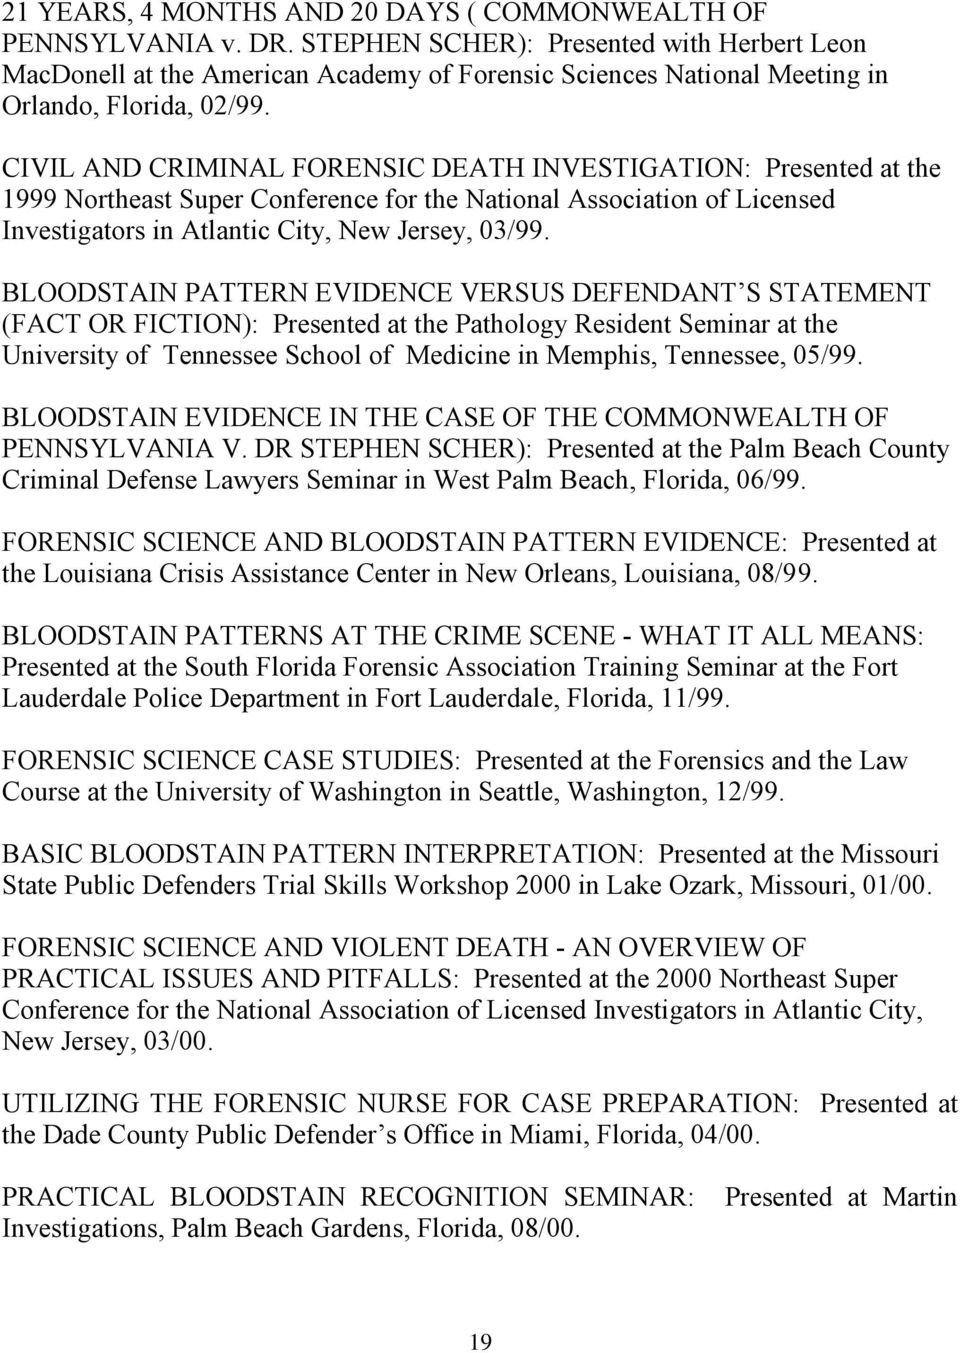 CIVIL AND CRIMINAL FORENSIC DEATH INVESTIGATION: Presented at the 1999 Northeast Super Conference for the National Association of Licensed Investigators in Atlantic City, New Jersey, 03/99.